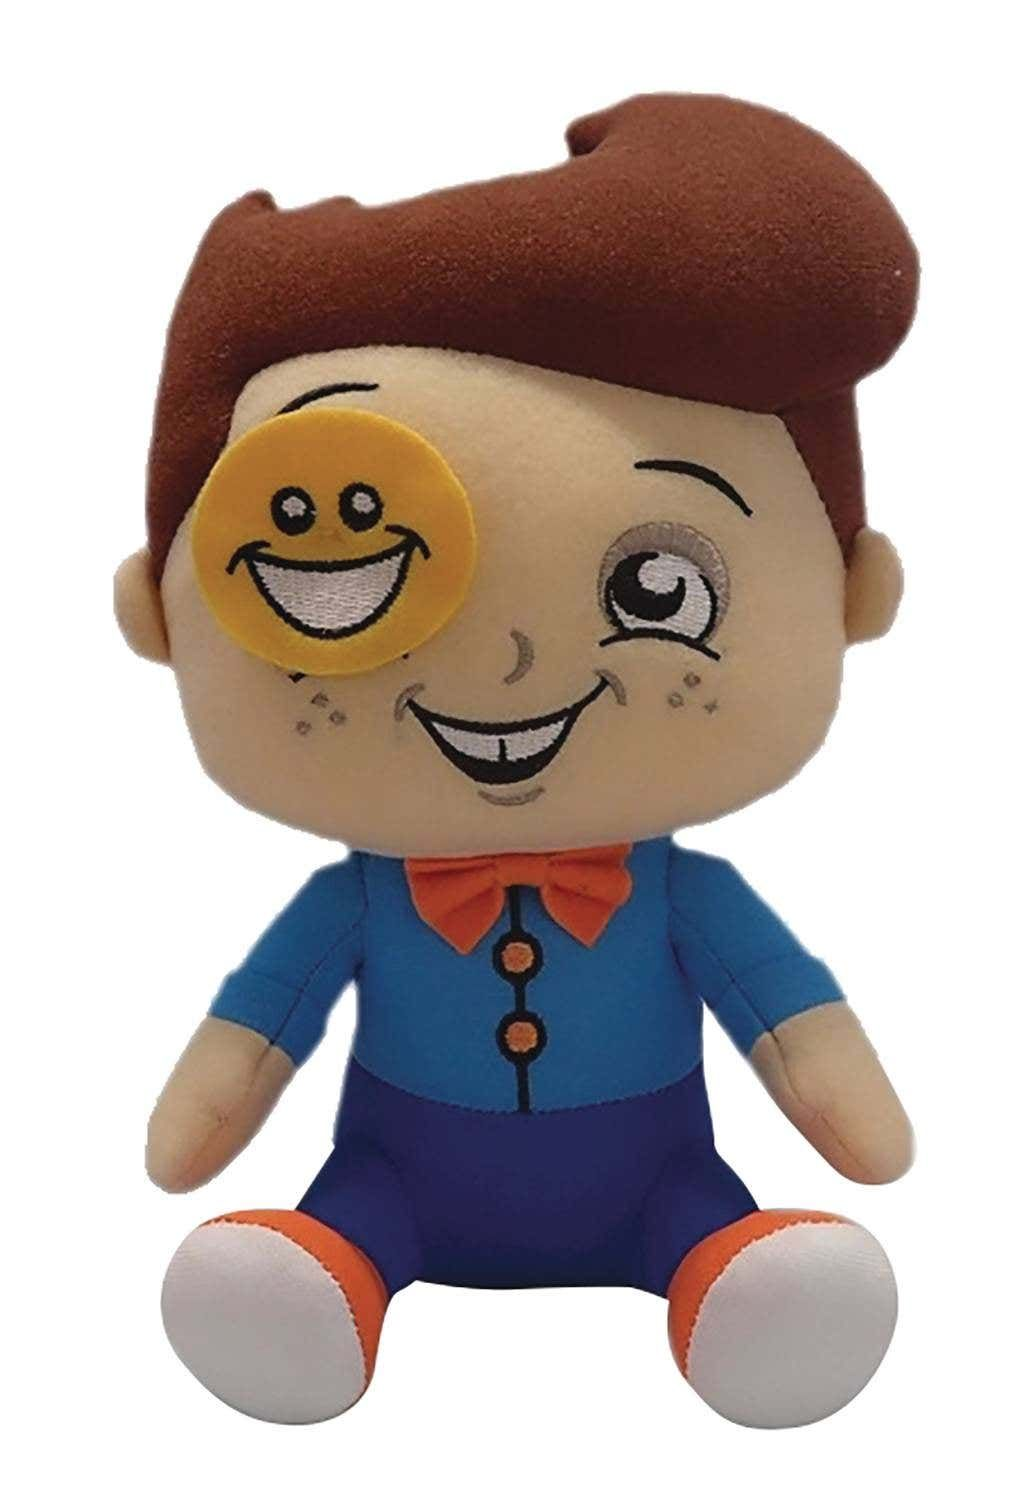 Fgteev 8in Plush With Images Best Kids Toys Plush Cool Toys